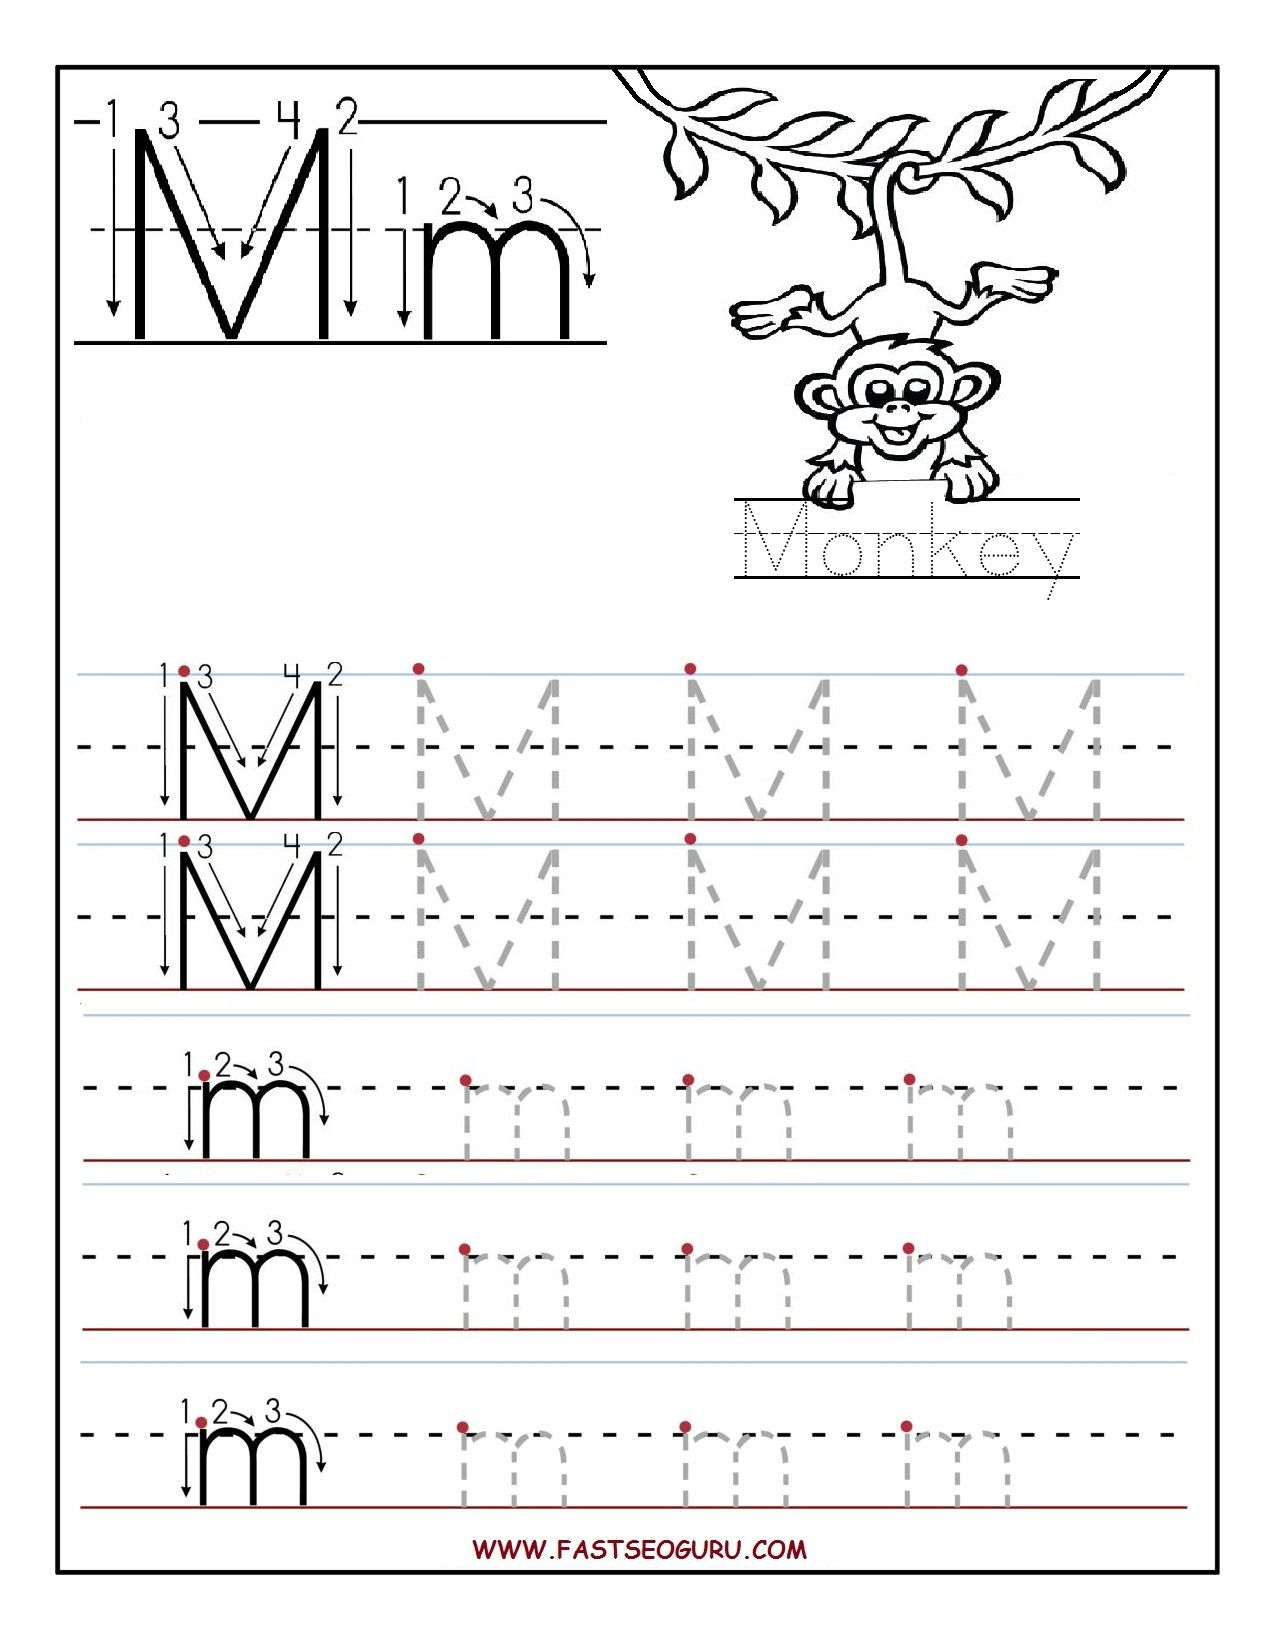 Printable Letter M Tracing Worksheets For Preschool with Printable Preschool Worksheets Tracing Letters